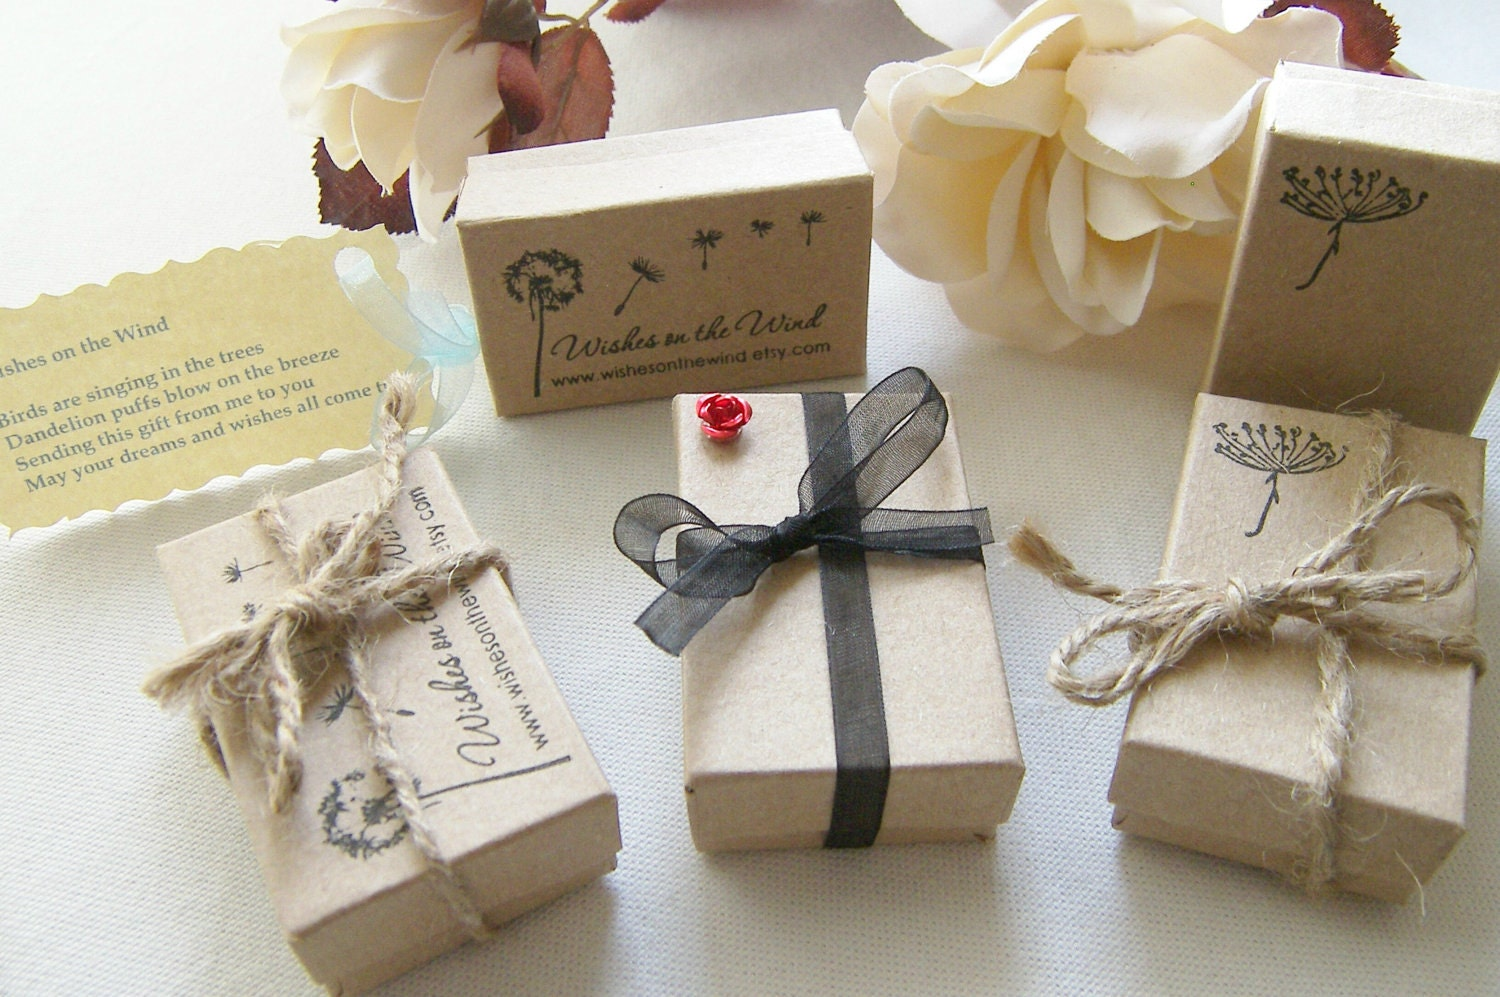 Wedding Gift Packing Ideas: WishesontheWind Dandelion Stamped Kraft Gift Box Packaging